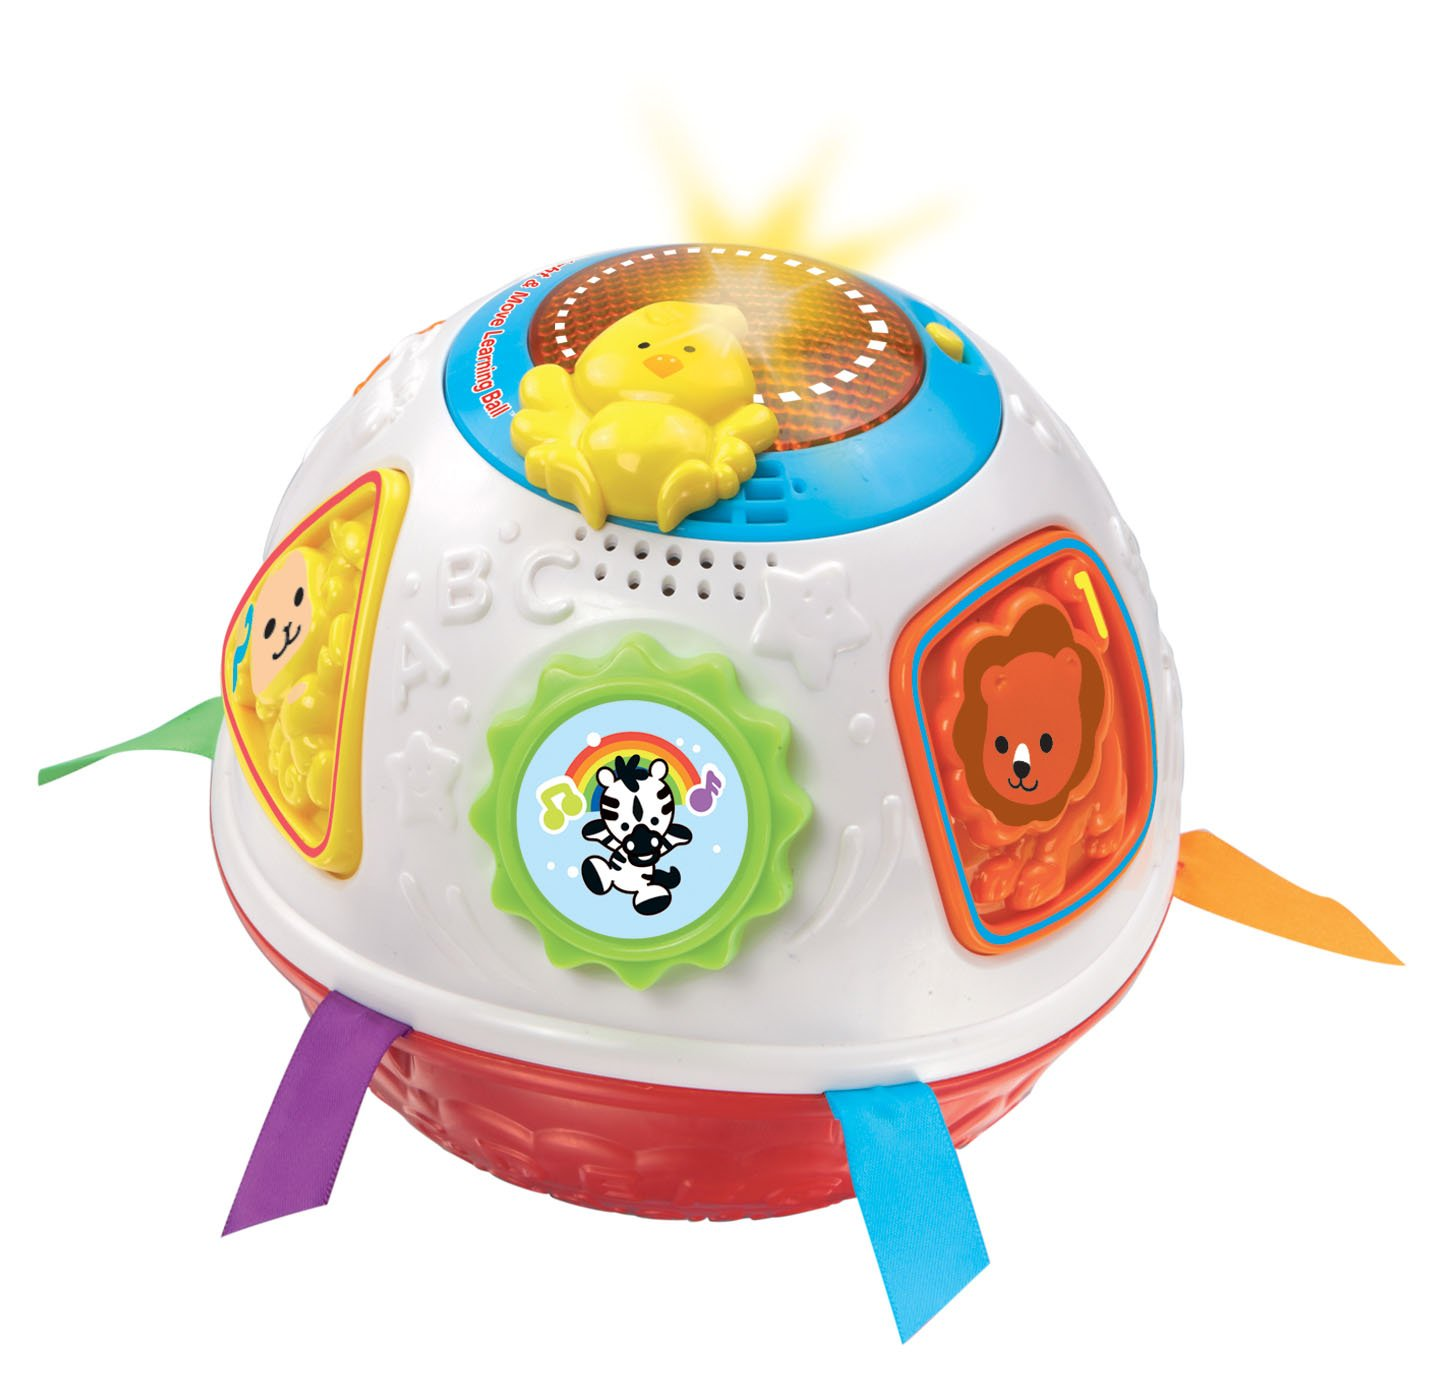 Ball Toys For Toddlers : Vtech move and crawl ball baby toddler kids toys music